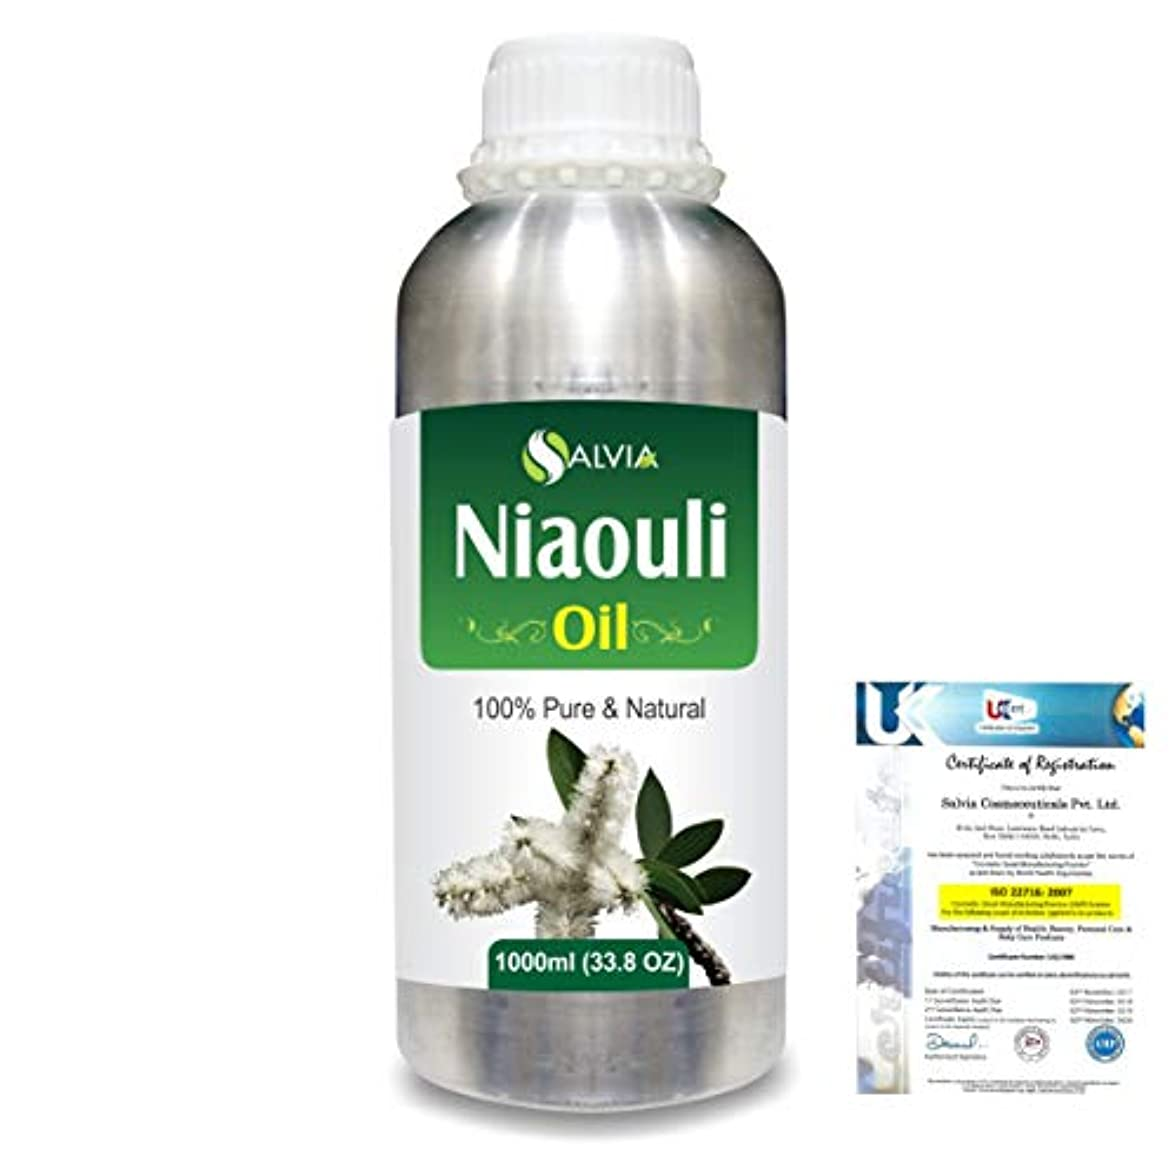 爬虫類生息地ビジネスNiaouli (Melaleuca Viridiflora) 100% Natural Pure Essential Oil 1000ml/33.8fl.oz.